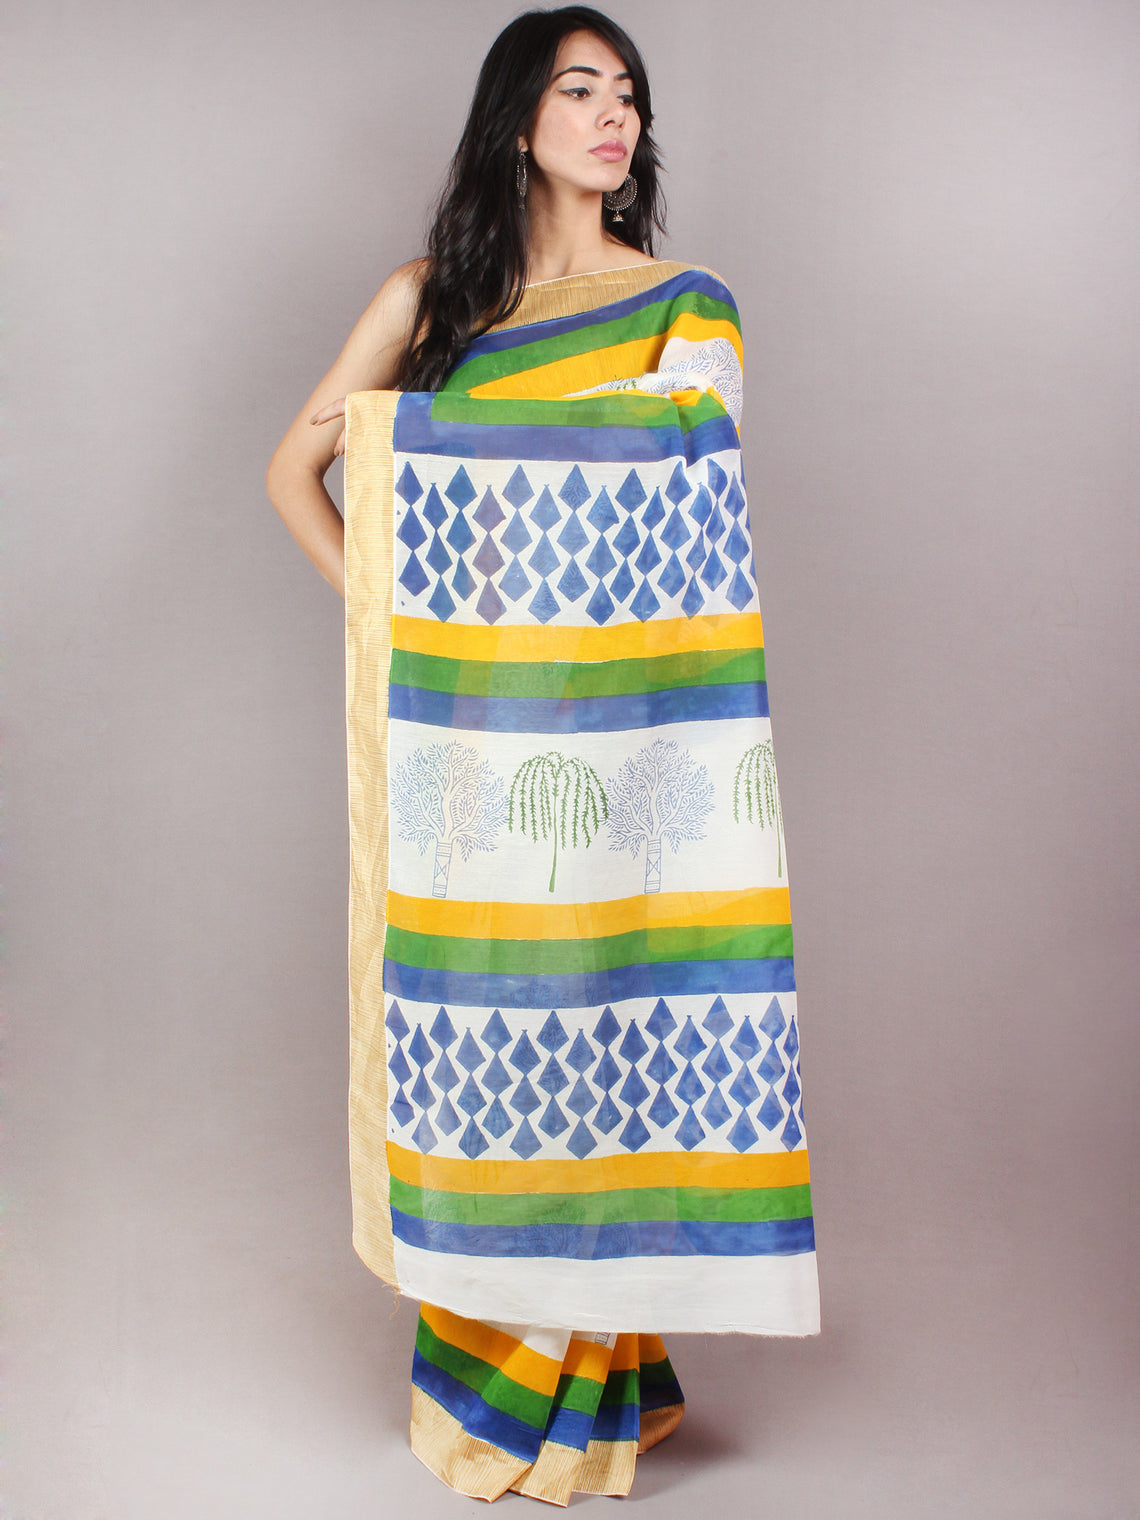 Ivory Yellow Blue Hand Block Printed in Natural Colors Chanderi Saree With Geecha Border - S03170686